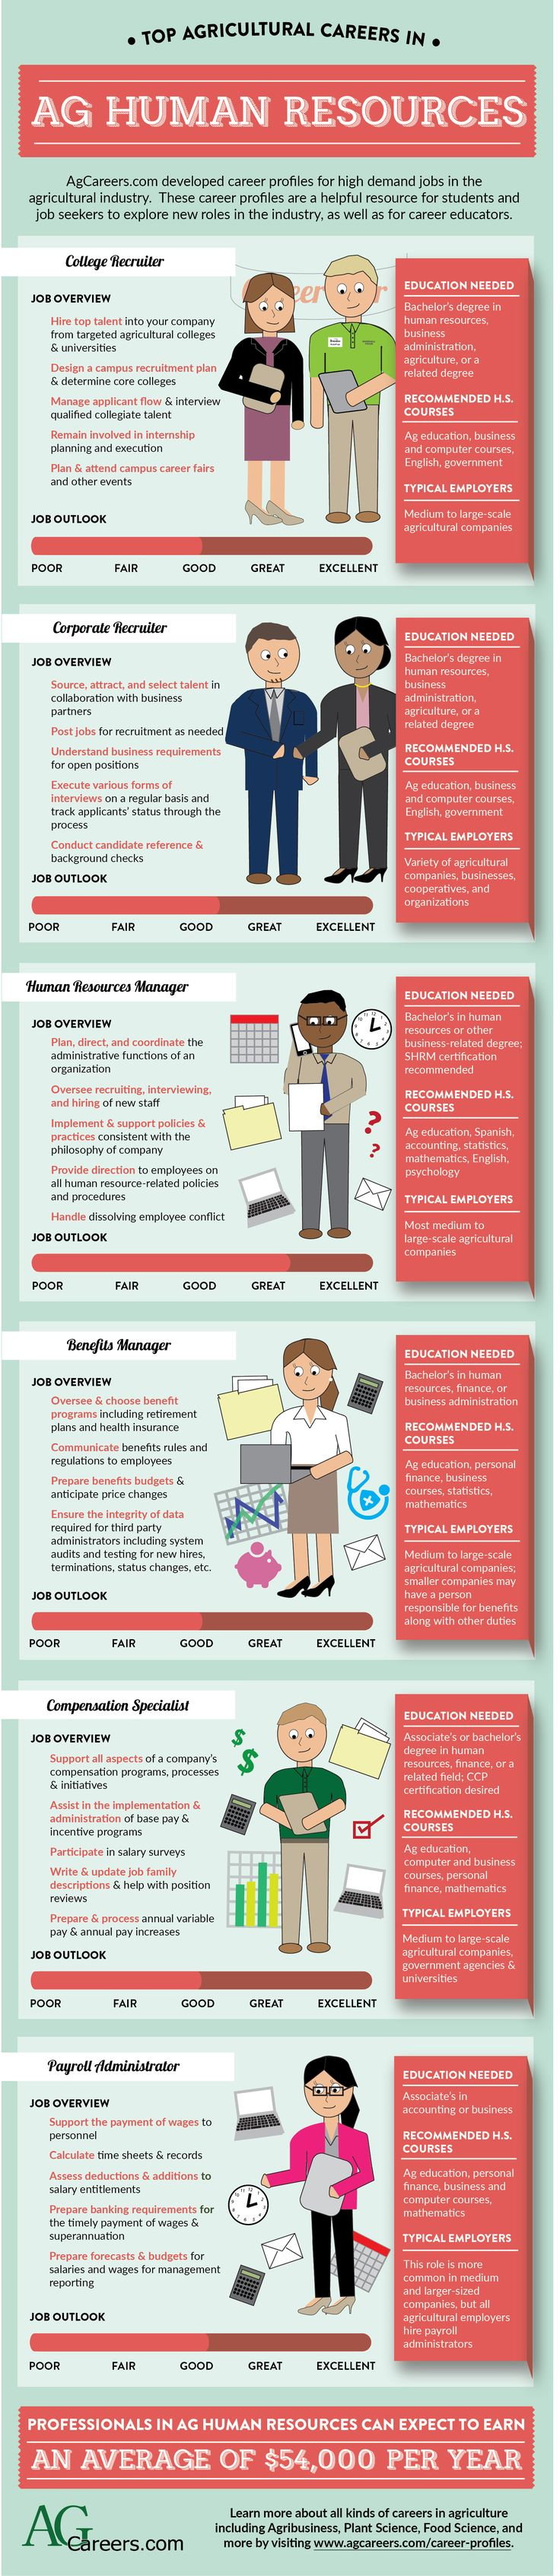 Top Agricultural Careers in Agricultural Human Resources - AgCareers.com developed career profiles for high-demand jobs in the agricultural industry. Explore the top careers in horticulture and find out the education needed, recommended high school coursework, job outlook, and typical employers. More information on other agricultural career profiles can be found here: http://www.agcareers.com/career-profiles/.